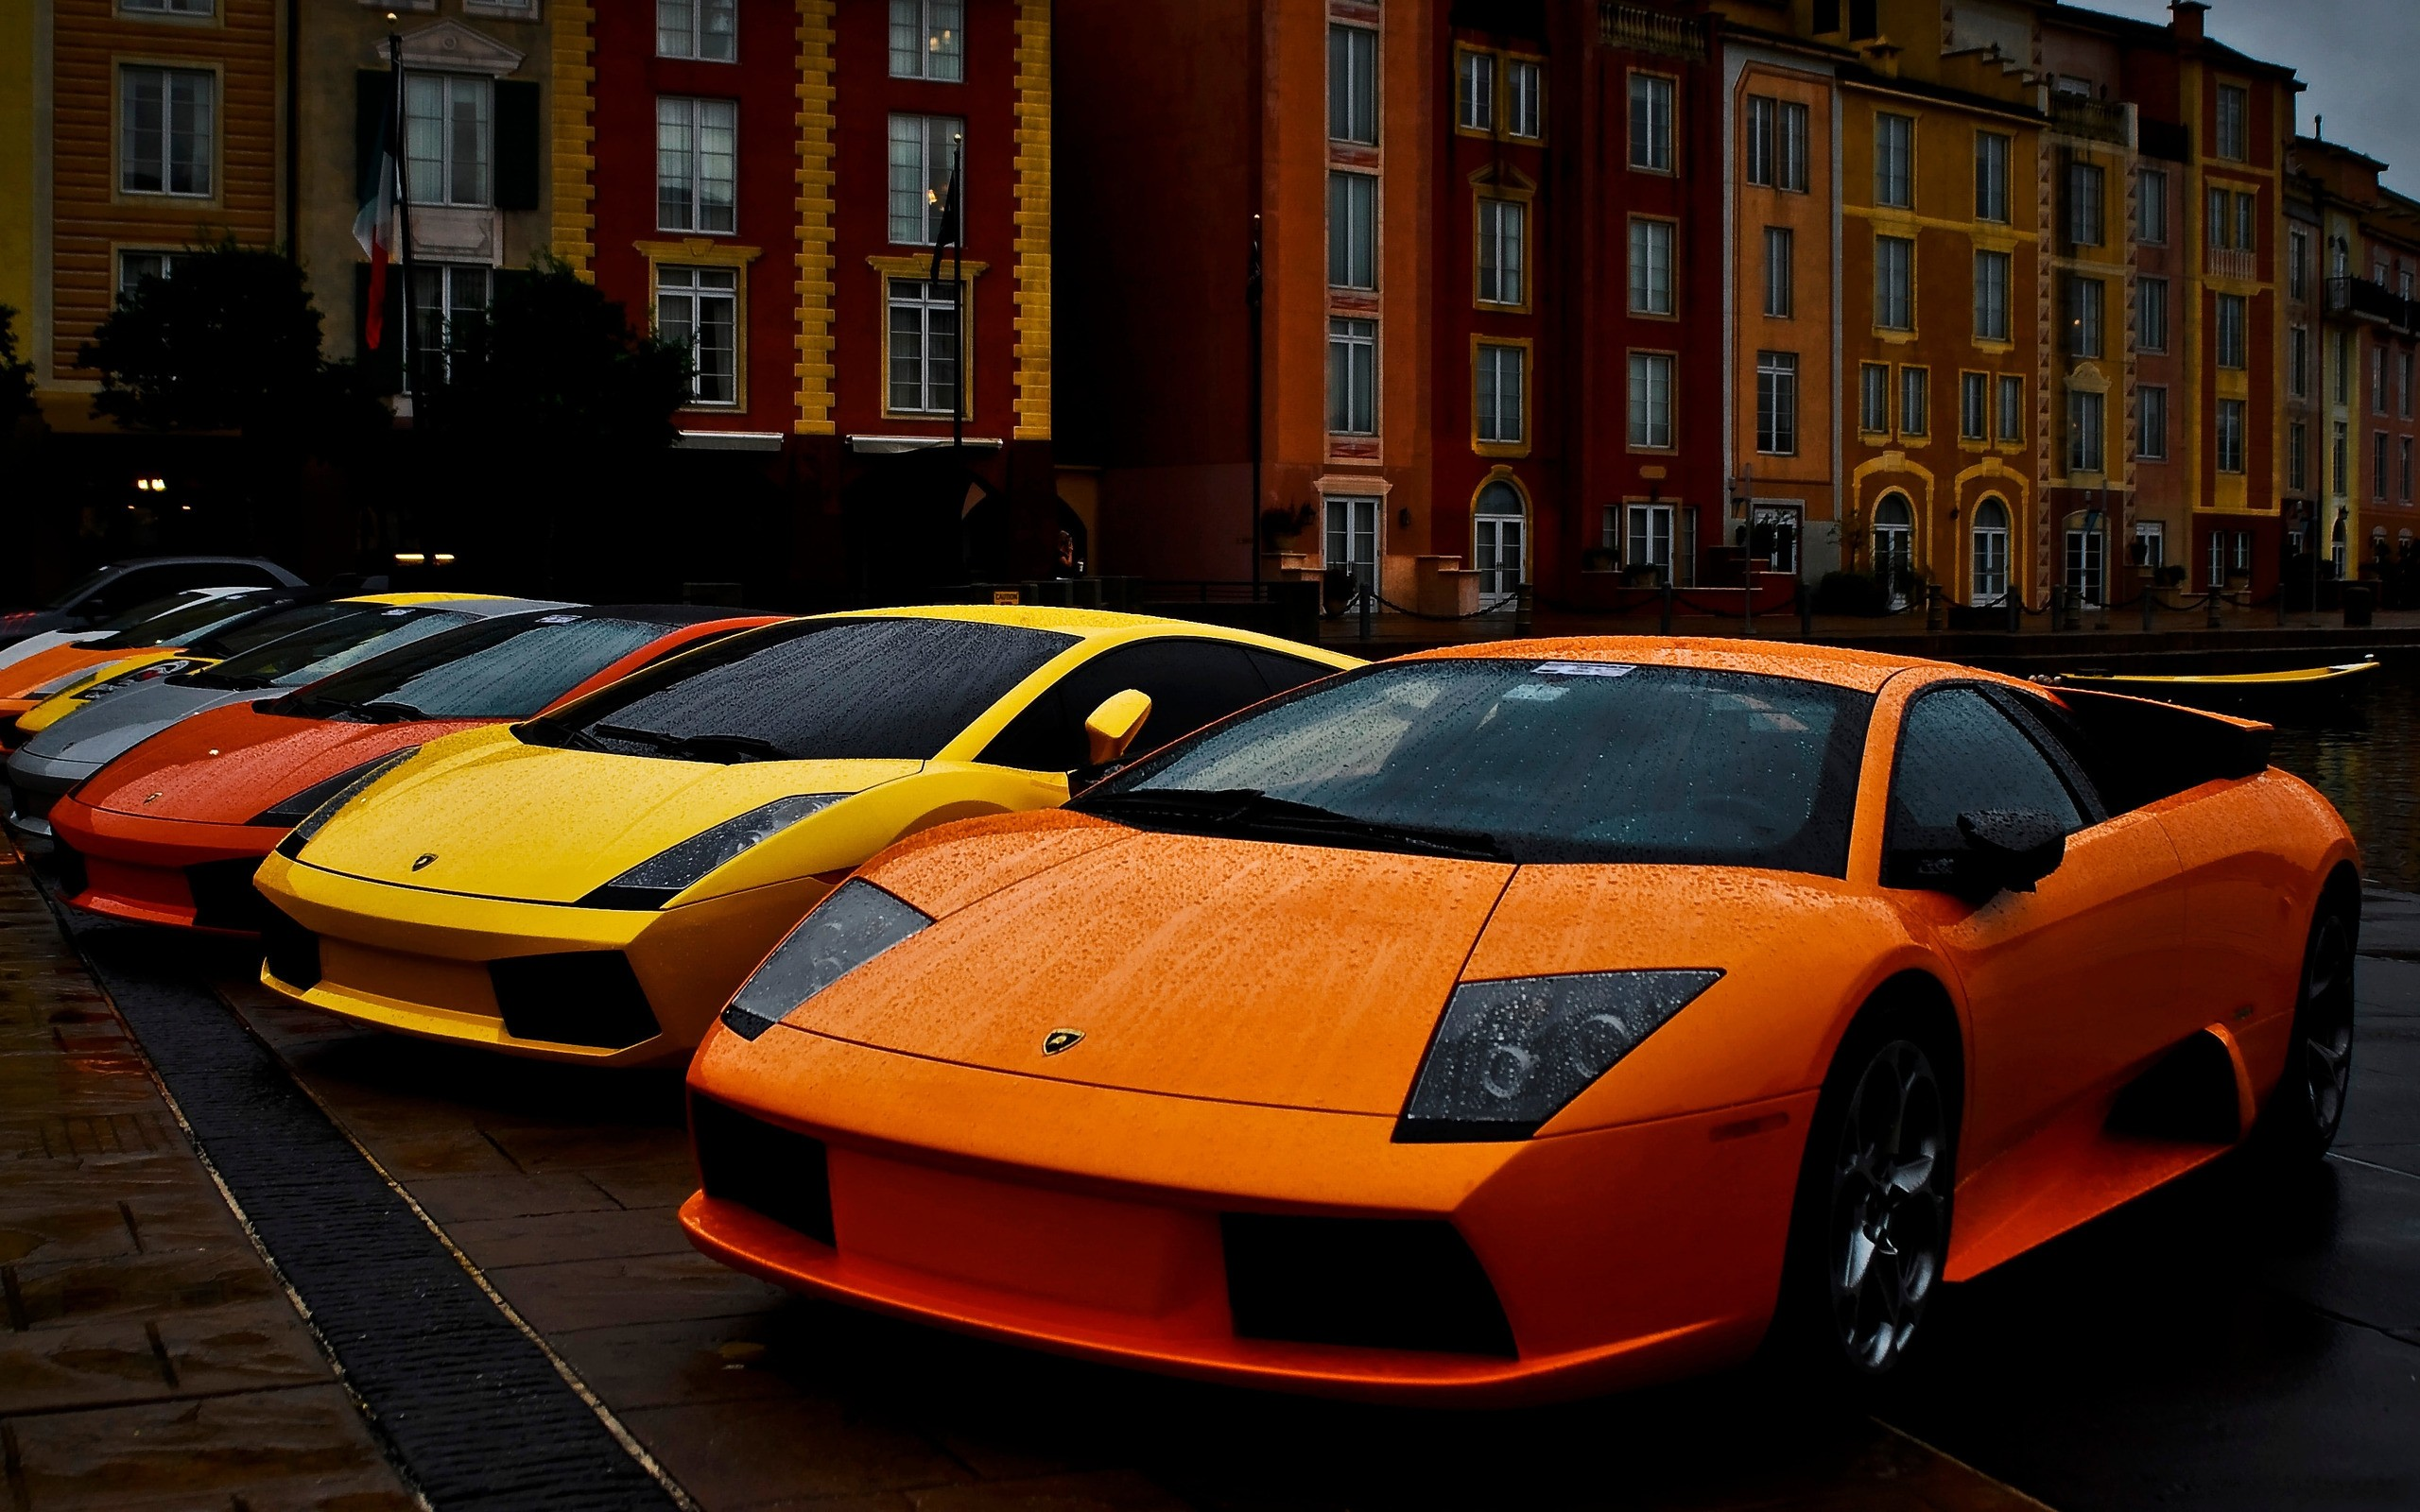 Vehicles - Lamborghini Wallpaper